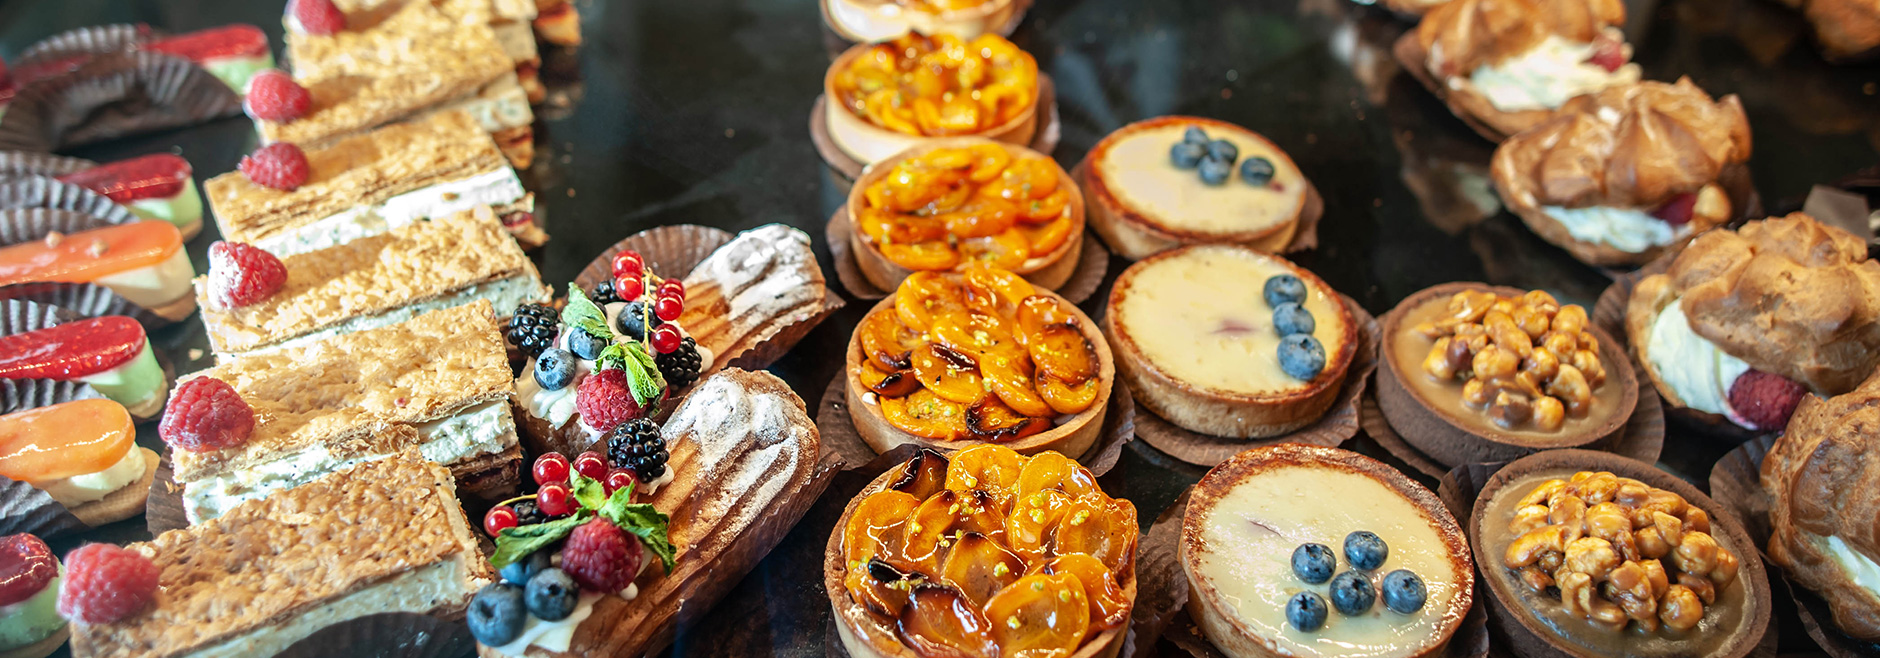 Baked Goods in Summit County Colorado | Paragon Lodging